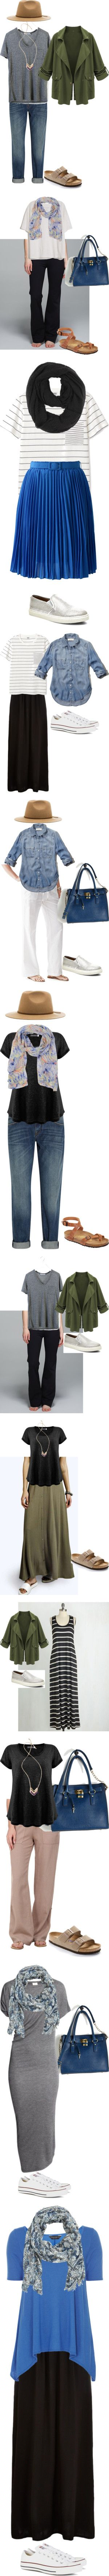 gap year travel outfits by kellybaker61 on Polyvore featuring dVb Victoria Beckham, T By Alexander Wang, Birkenstock, Brixton, lululemon, Fine Collection, Melie Bianco, Pieces, Chicwish and Paula Bianco